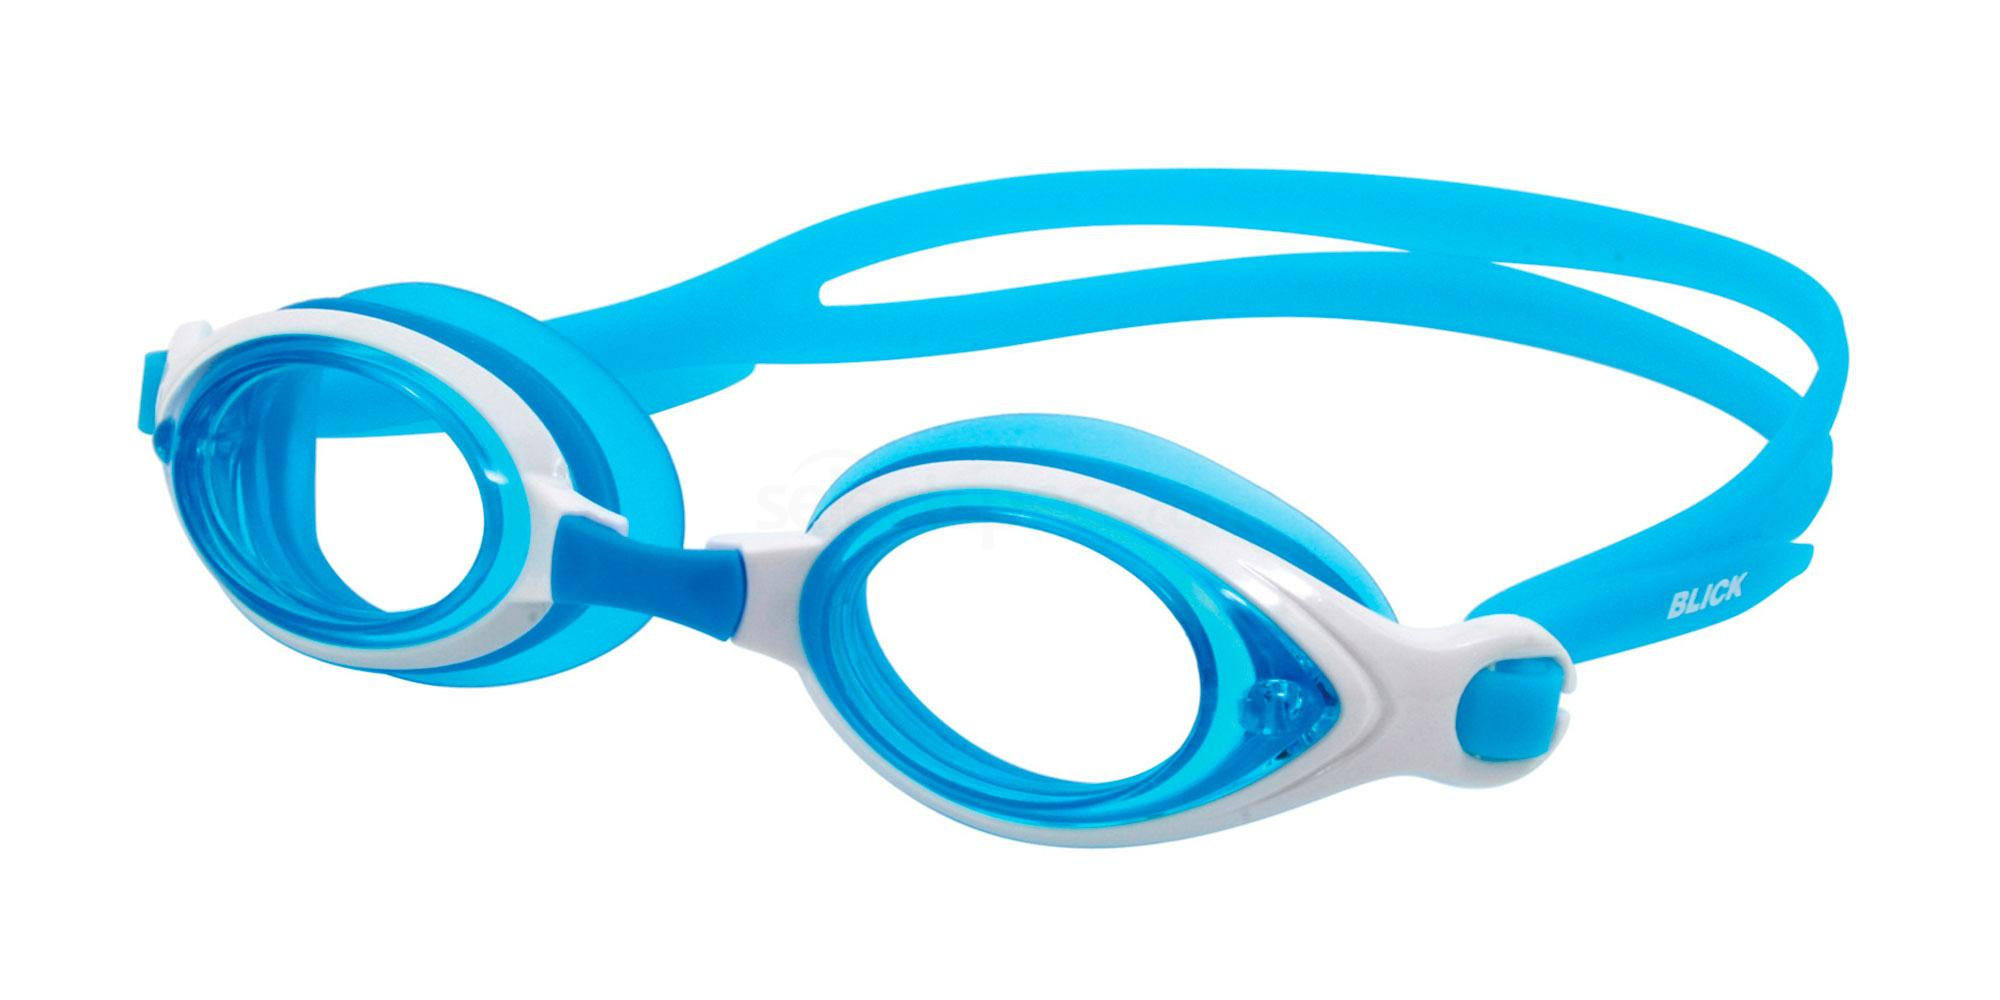 Blue Blick Junior (5-12 years) Accessories, Sports Eyewear Kids